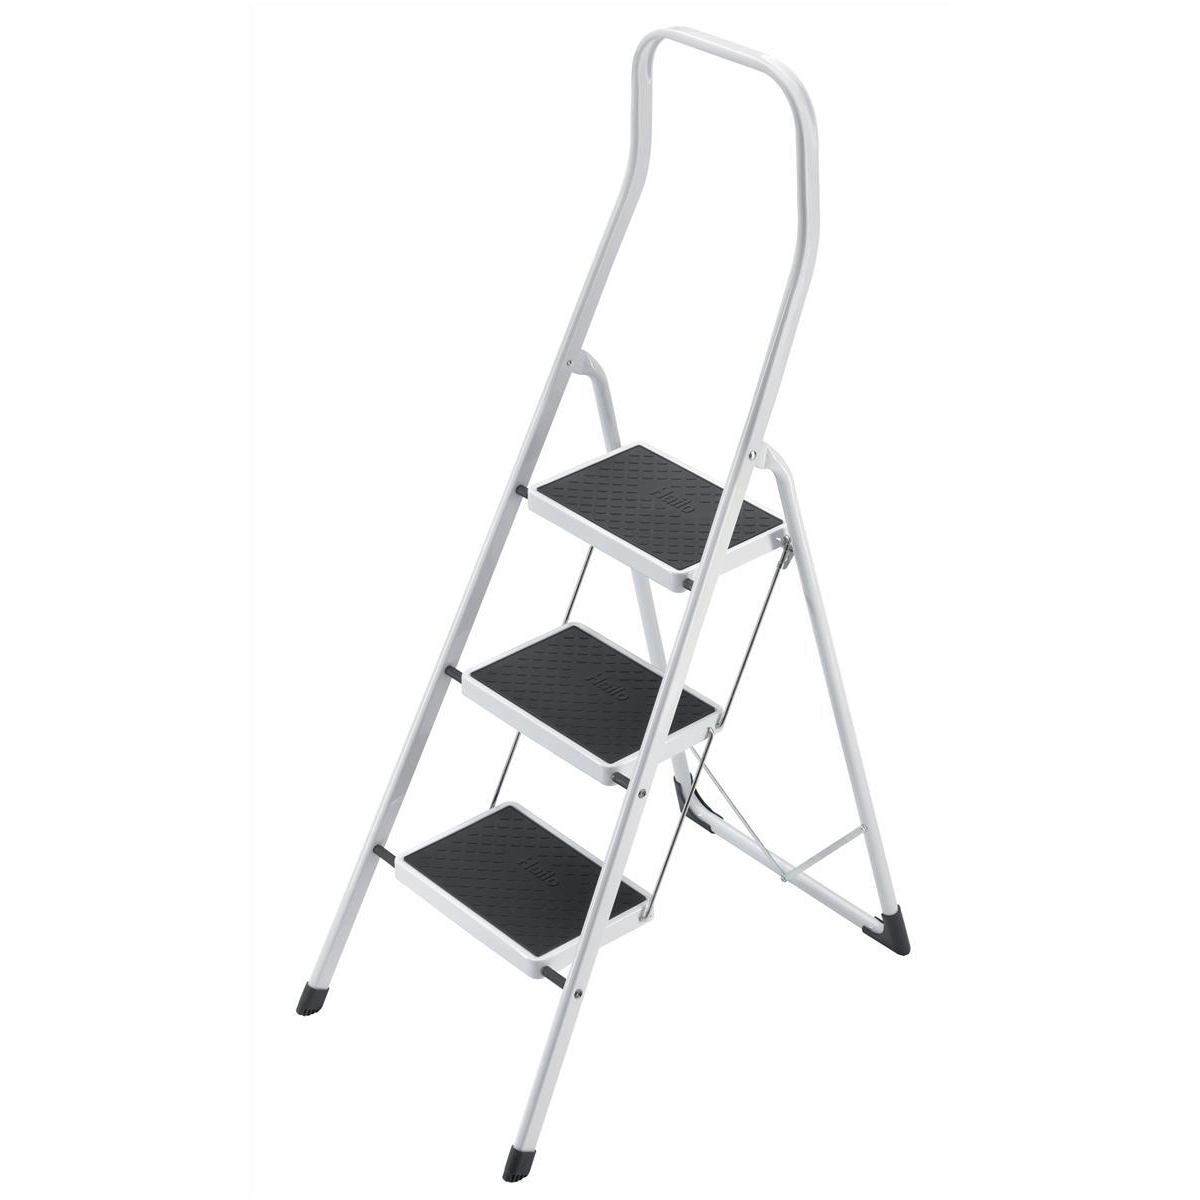 Step stool 5 Star Facilities Safety Steps Folding Safety Rail H0.5m 3 Treads Capacity 150kg H2.49m 6.6kg